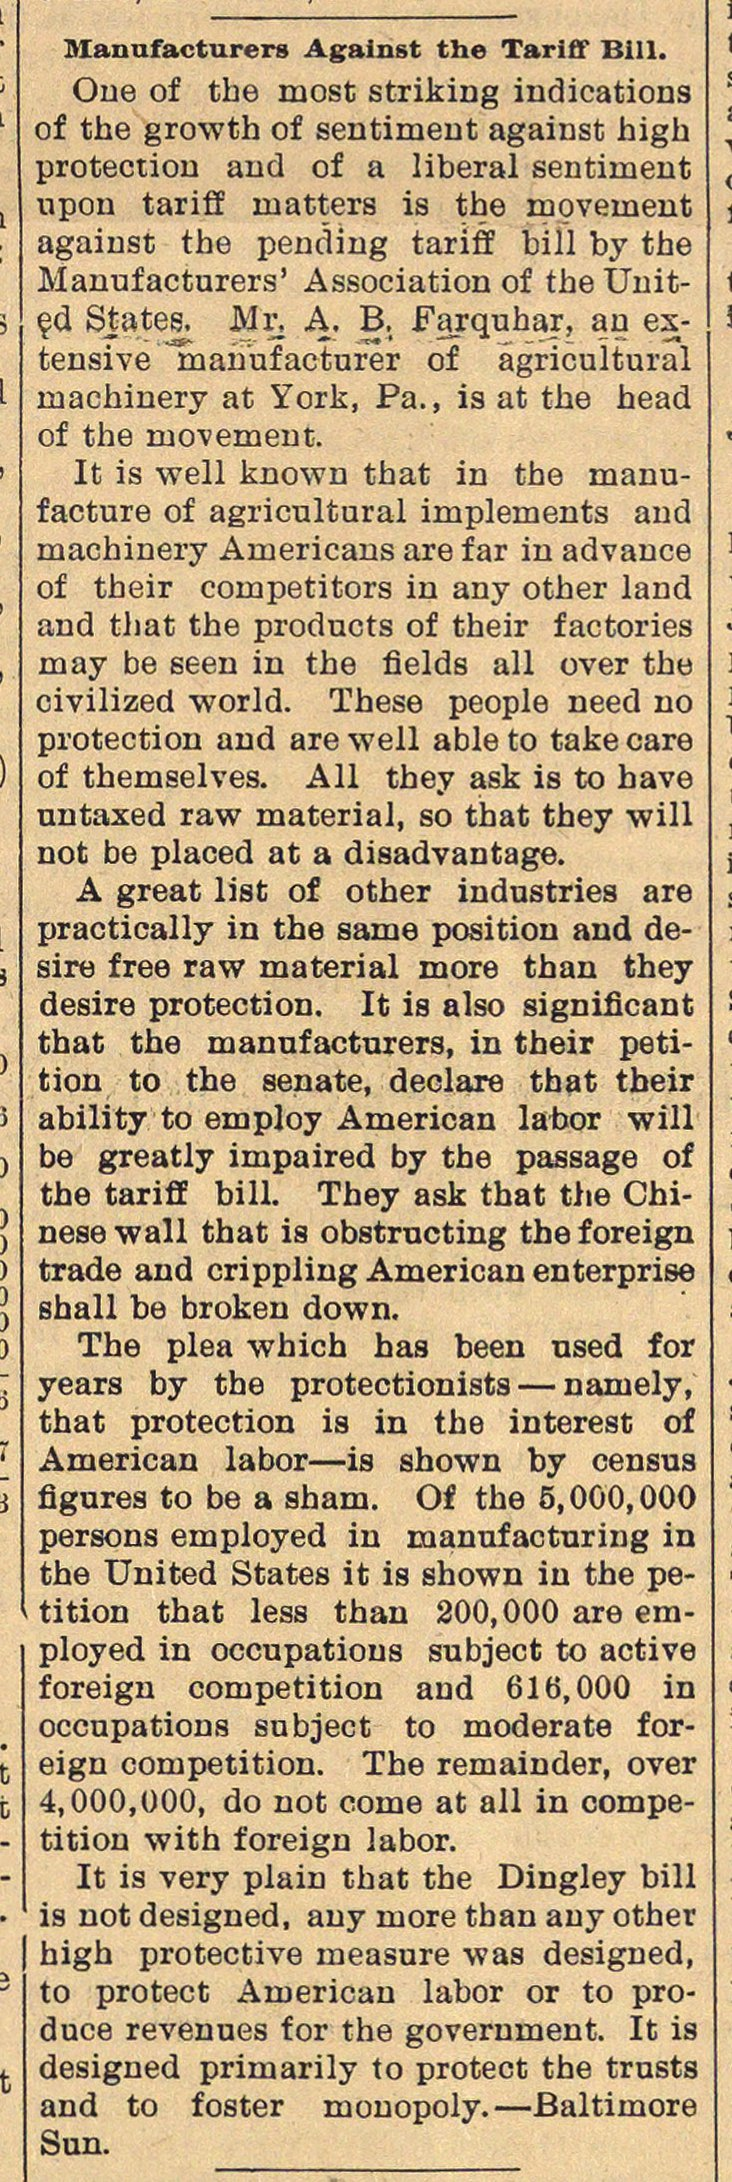 Manufacturers Against The Tariff Bill image